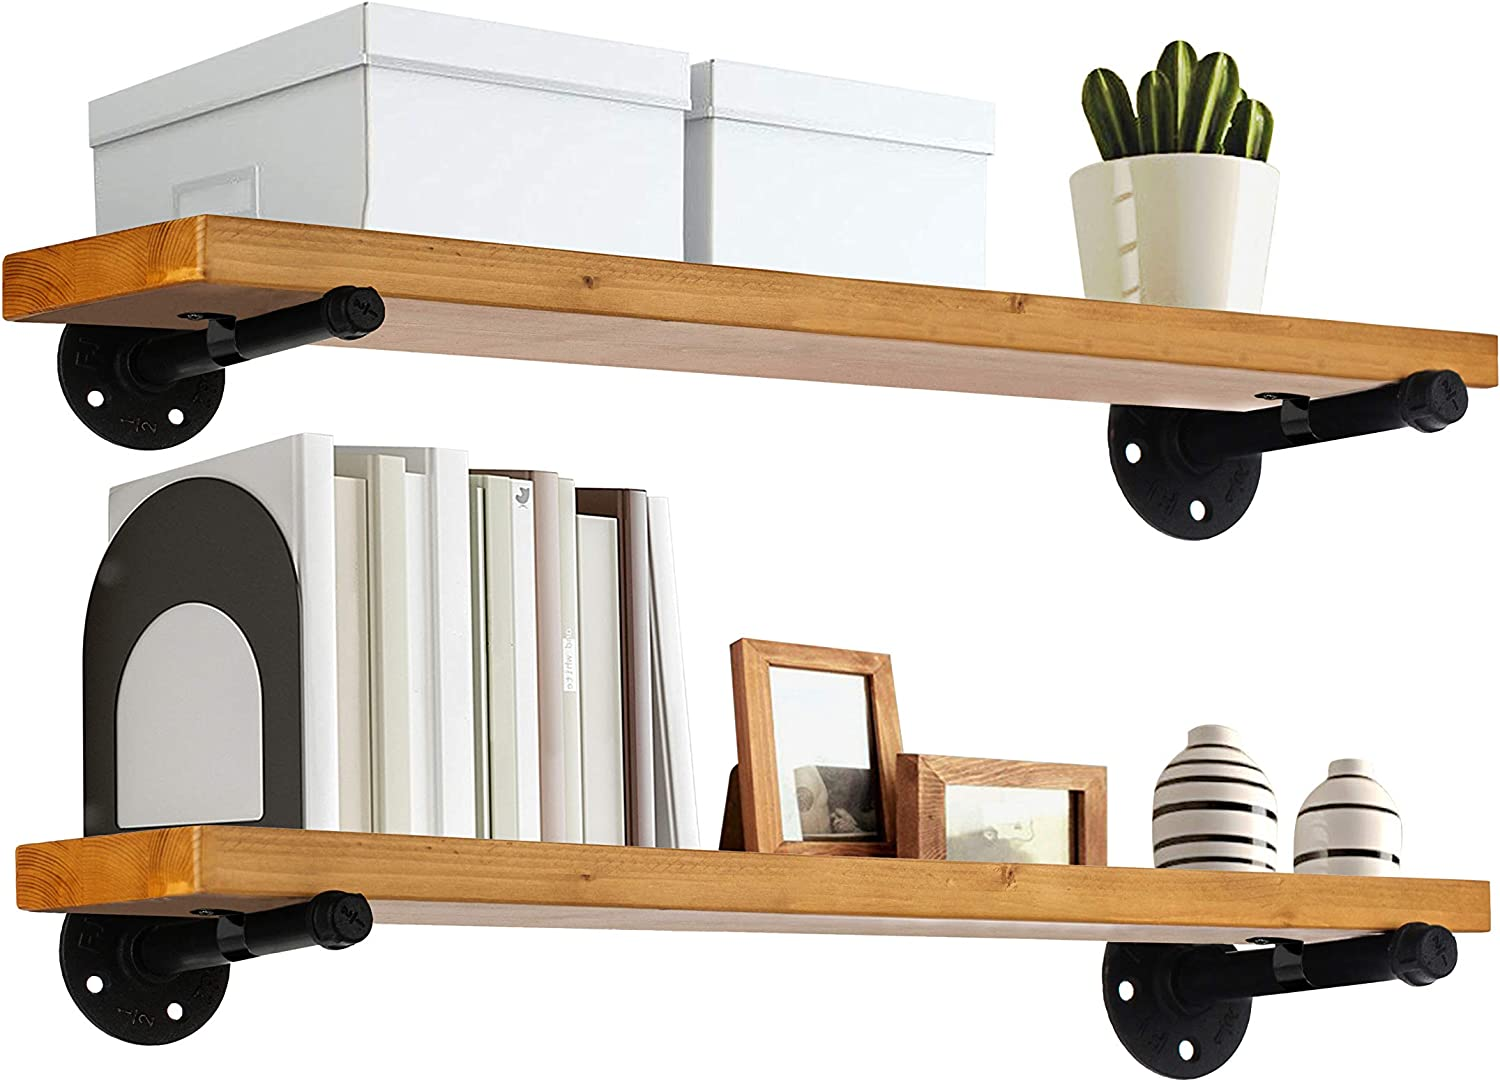 "TEN49 Industrial Wood Shelf - 24"" Special Walnut Rustic Wooden Wall Shelves with Iron Pipes - Contemporary Interior Decor Floating Shelving with Pipe Brackets - Farmhouse Style Bookshelf Set of 2"